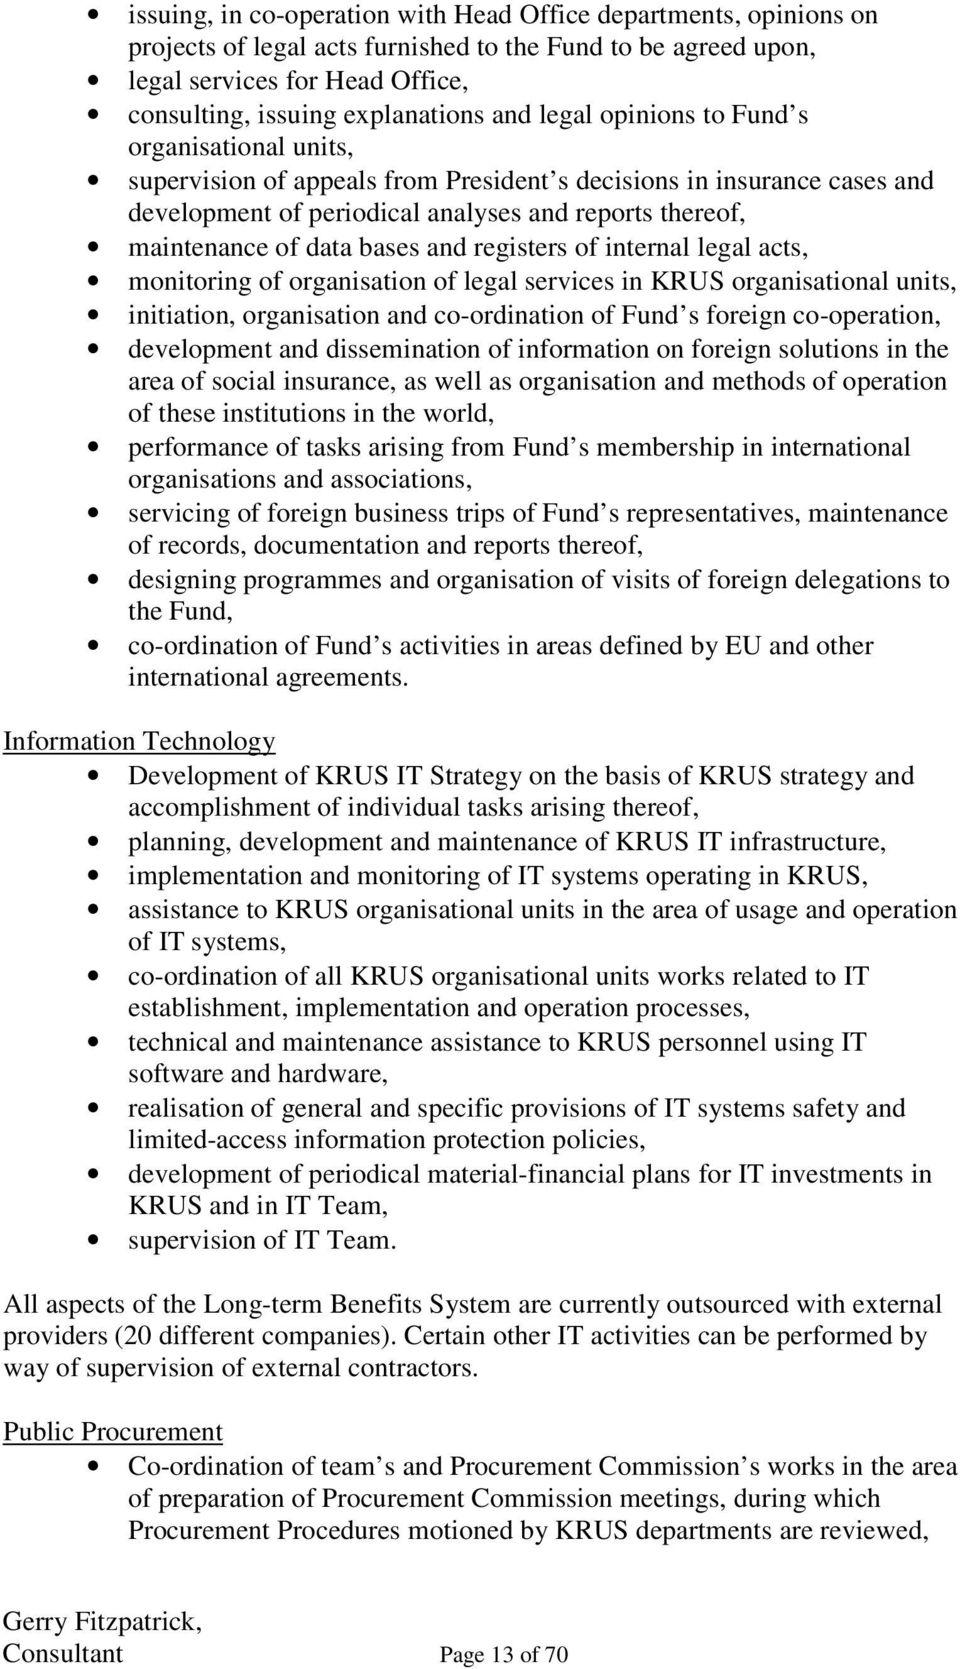 bases and registers of internal legal acts, monitoring of organisation of legal services in KRUS organisational units, initiation, organisation and co-ordination of Fund s foreign co-operation,